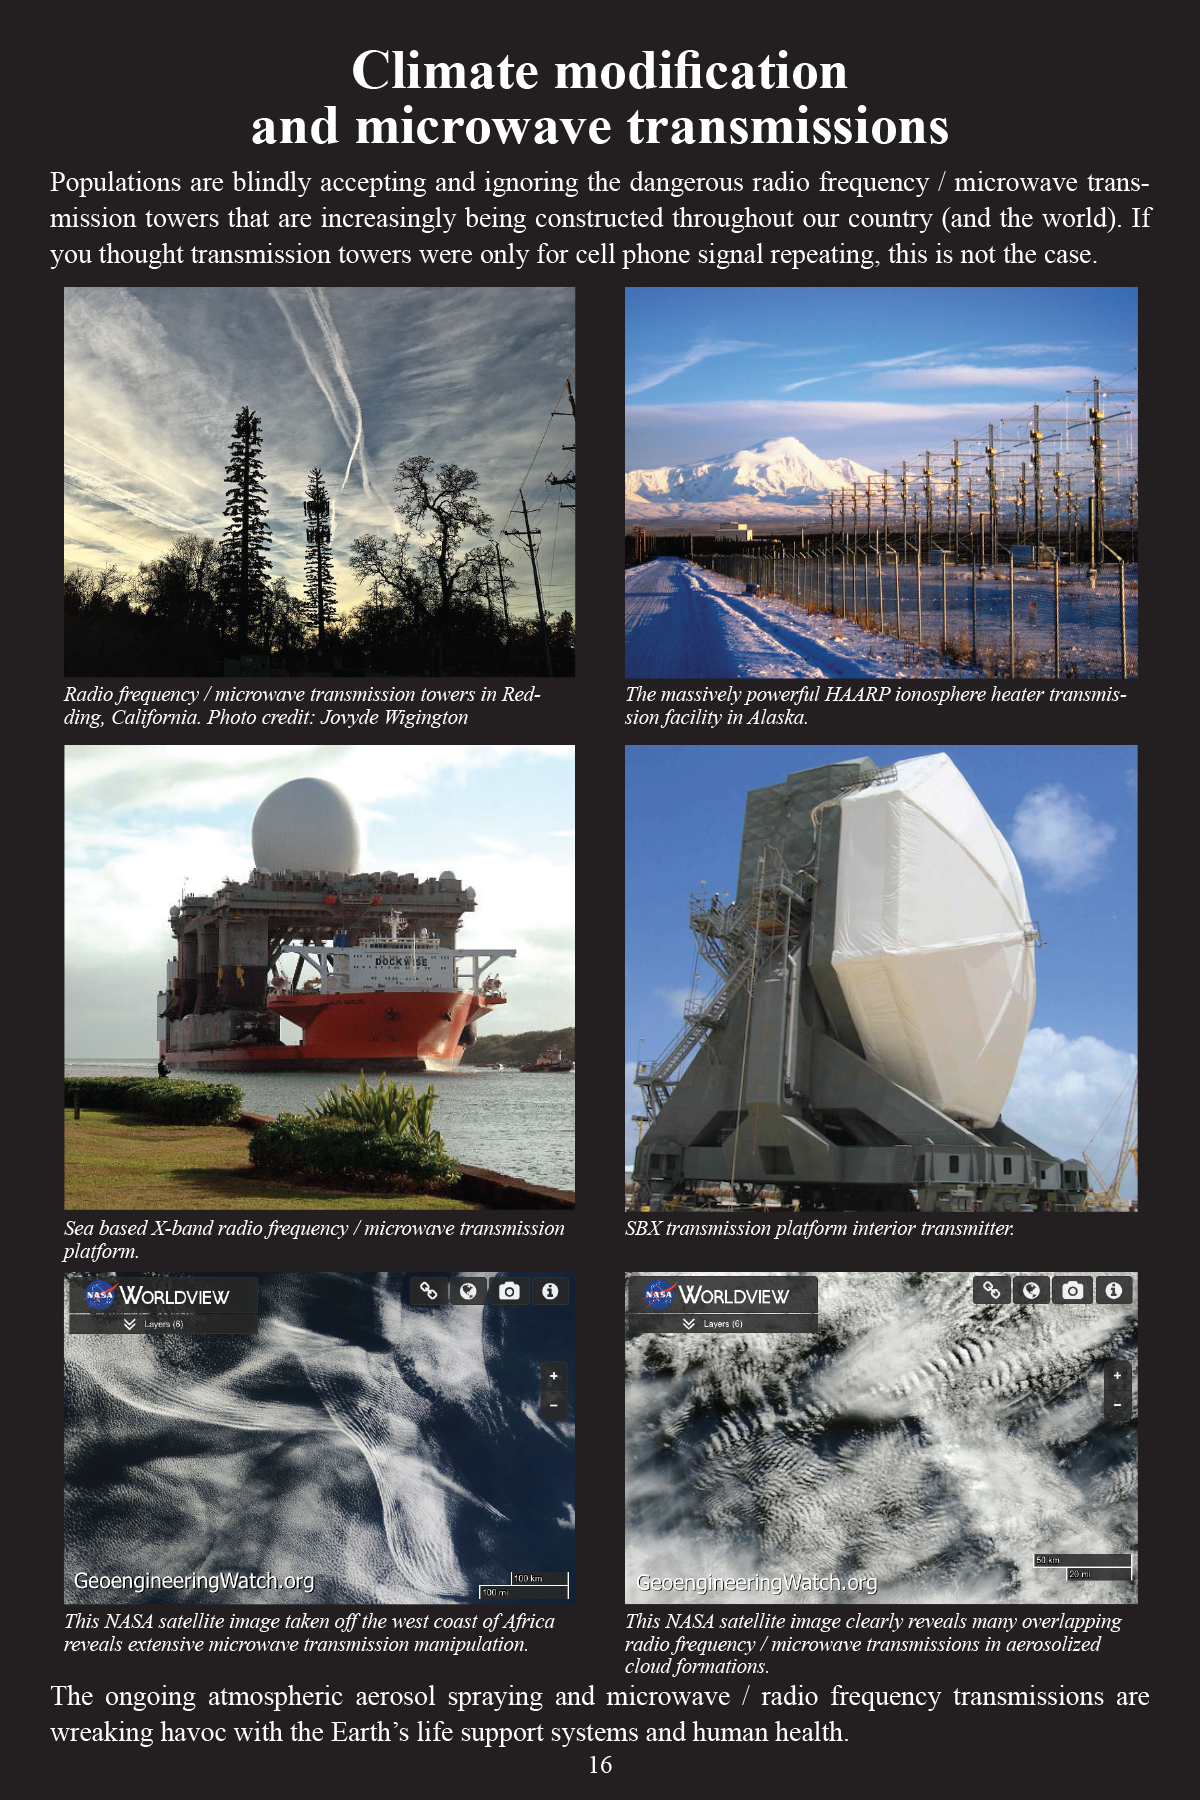 Climate Engineering Fact And Photo Summary - page 16